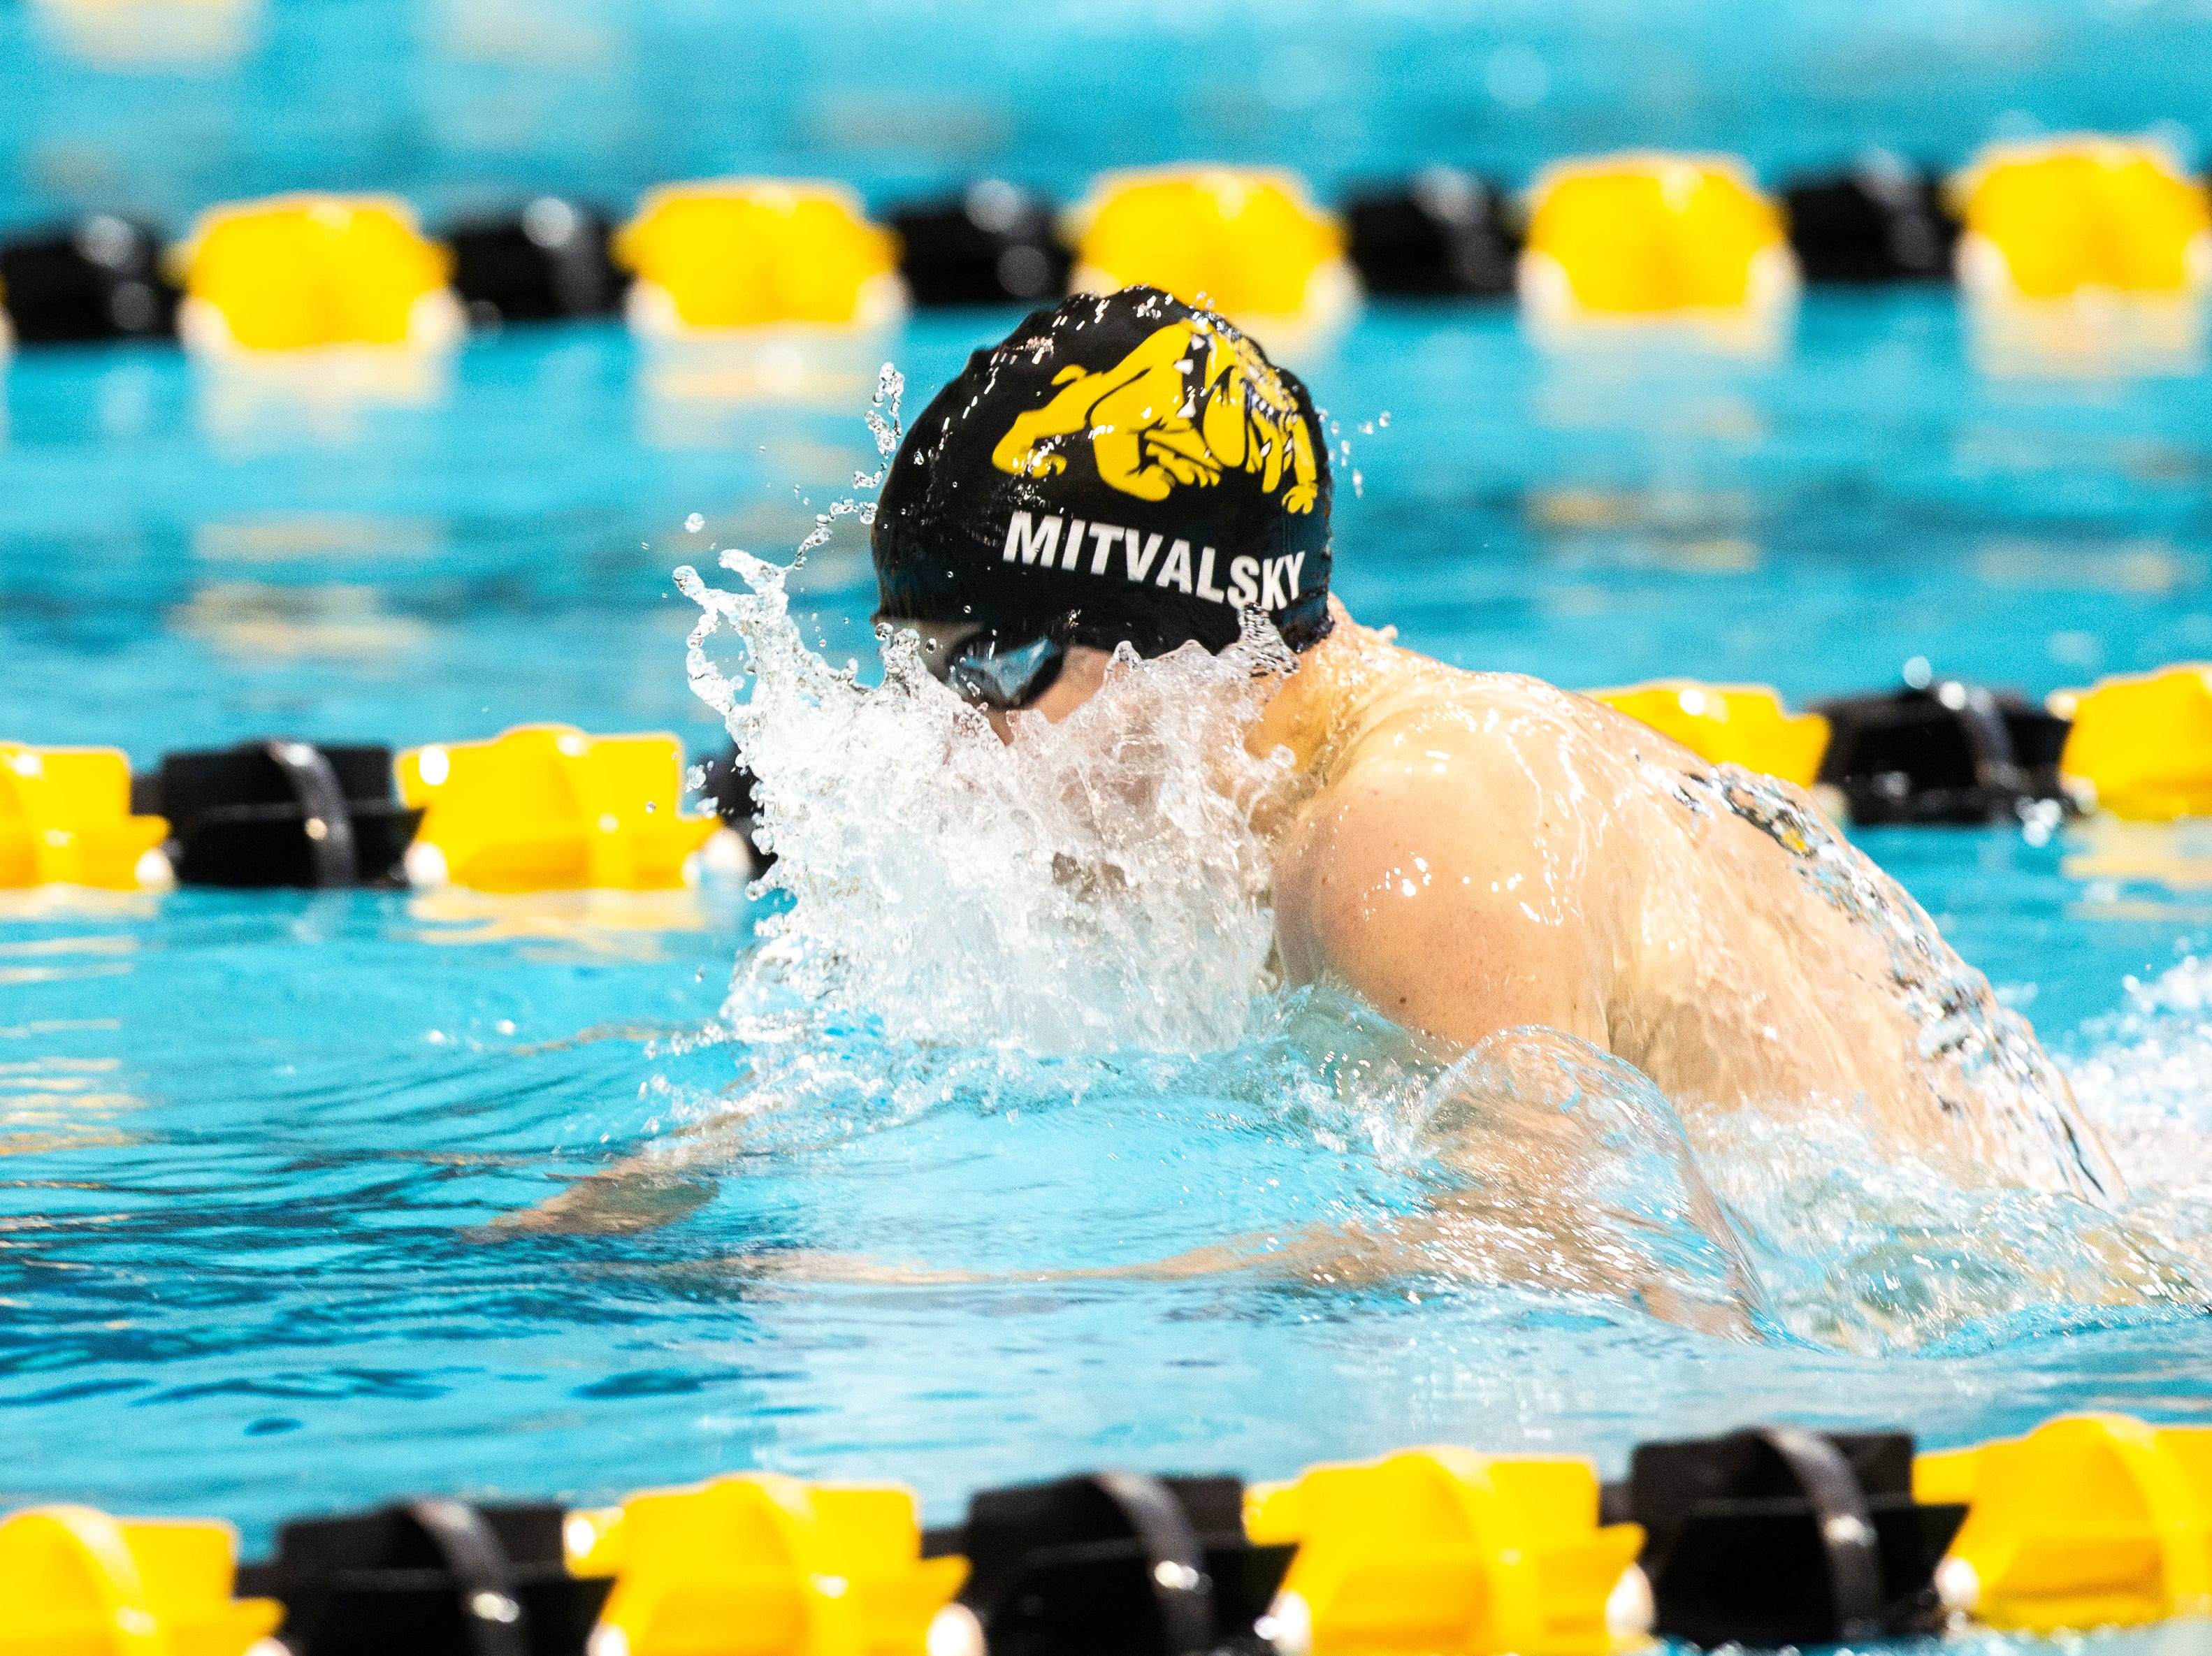 Bettendorf junior Ben Ketelaar competes in the first heat of 100 yard breaststroke during the Iowa boys' state swimming regional championship meet on Saturday, Feb. 9, 2019 at Campus Recreation and Wellness Center on the University of Iowa campus in Iowa City, Iowa. Ketelaar finished sixth overall, with a time of 1:00.06.